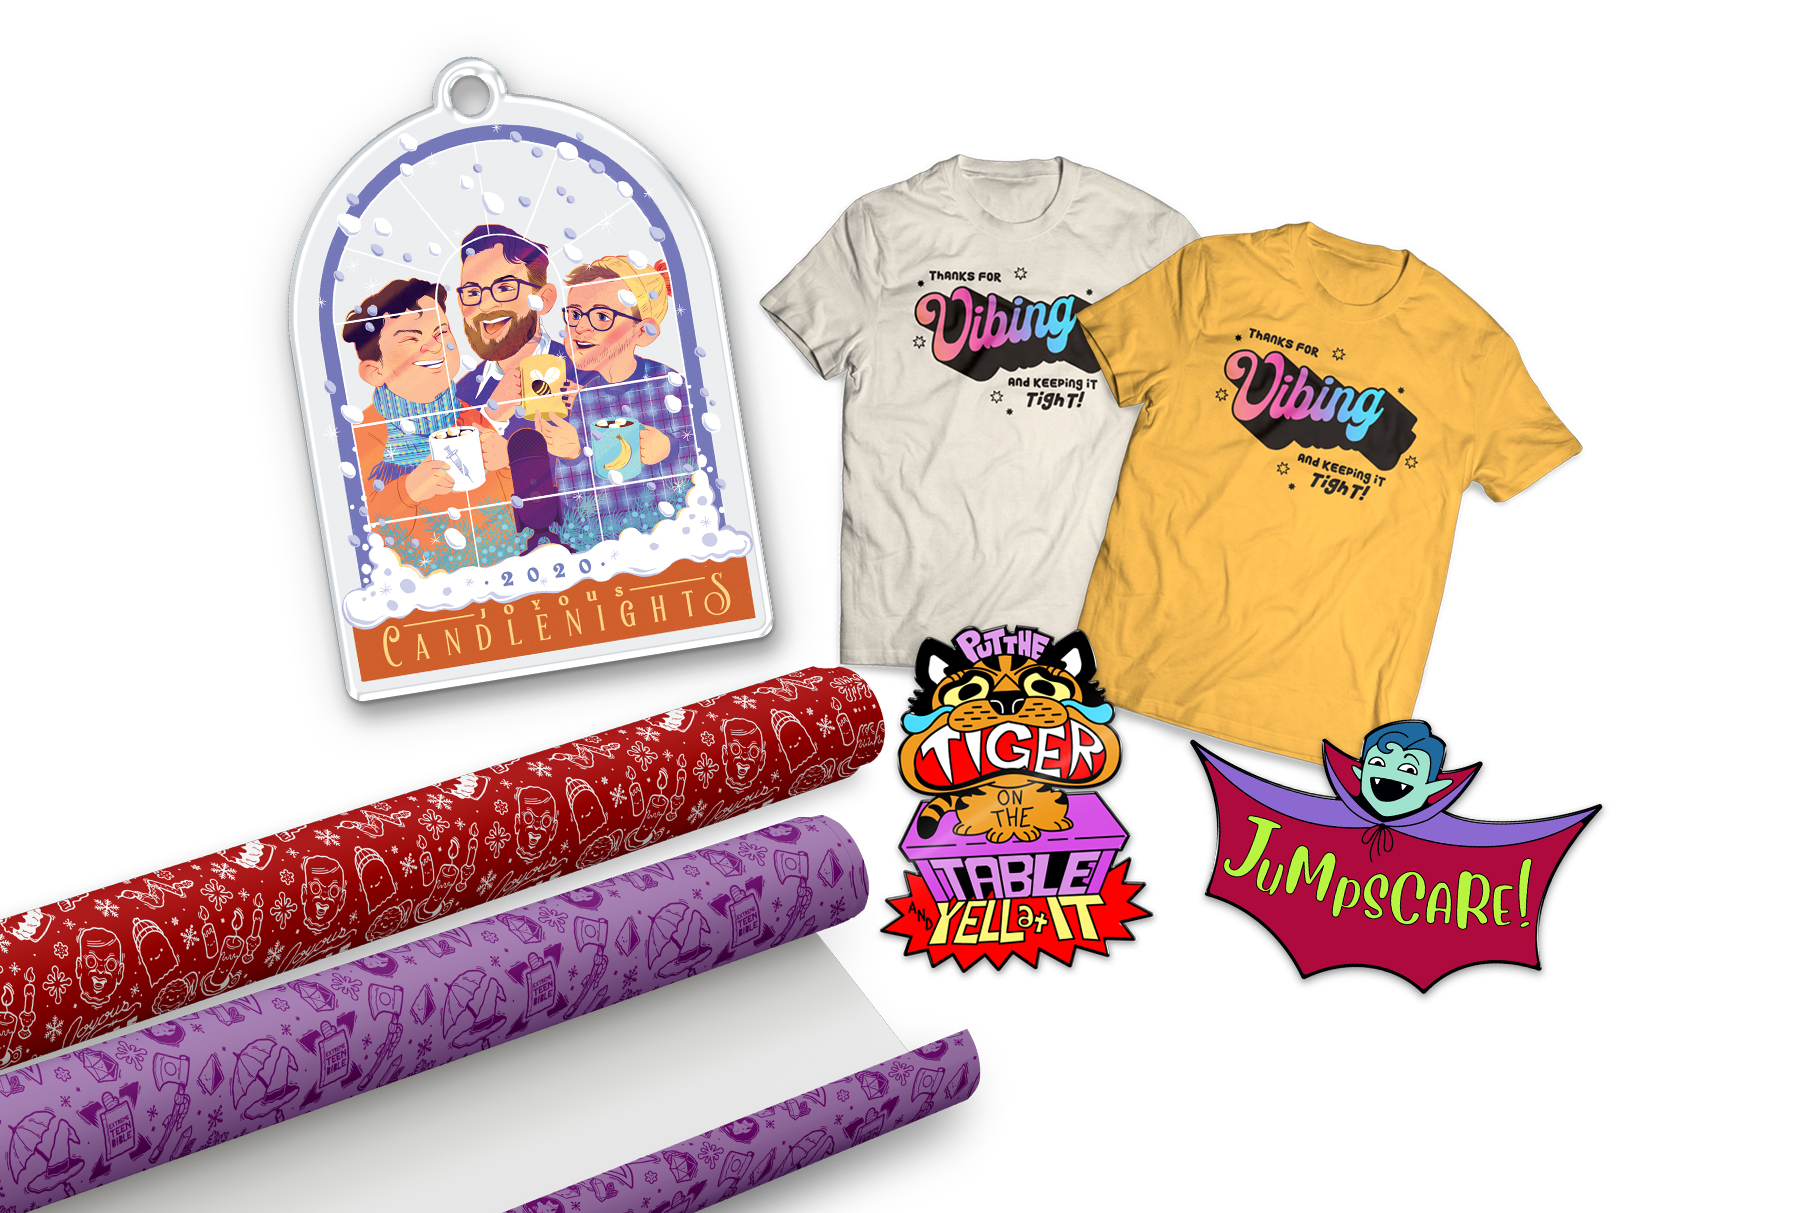 """Image of the five October McElroy merch items: an acrylic Candlenights ornament, two shirts that say, """"Thanks for vibing and keeping it tight!"""", an enamel pin of a crying cartoon tiger, an enamel pin of Justin as a vampire that says """"Jumpscare!"""", a roll of red MBMBaM wrapping paper, and a roll of purple TAZ wrapping paper."""